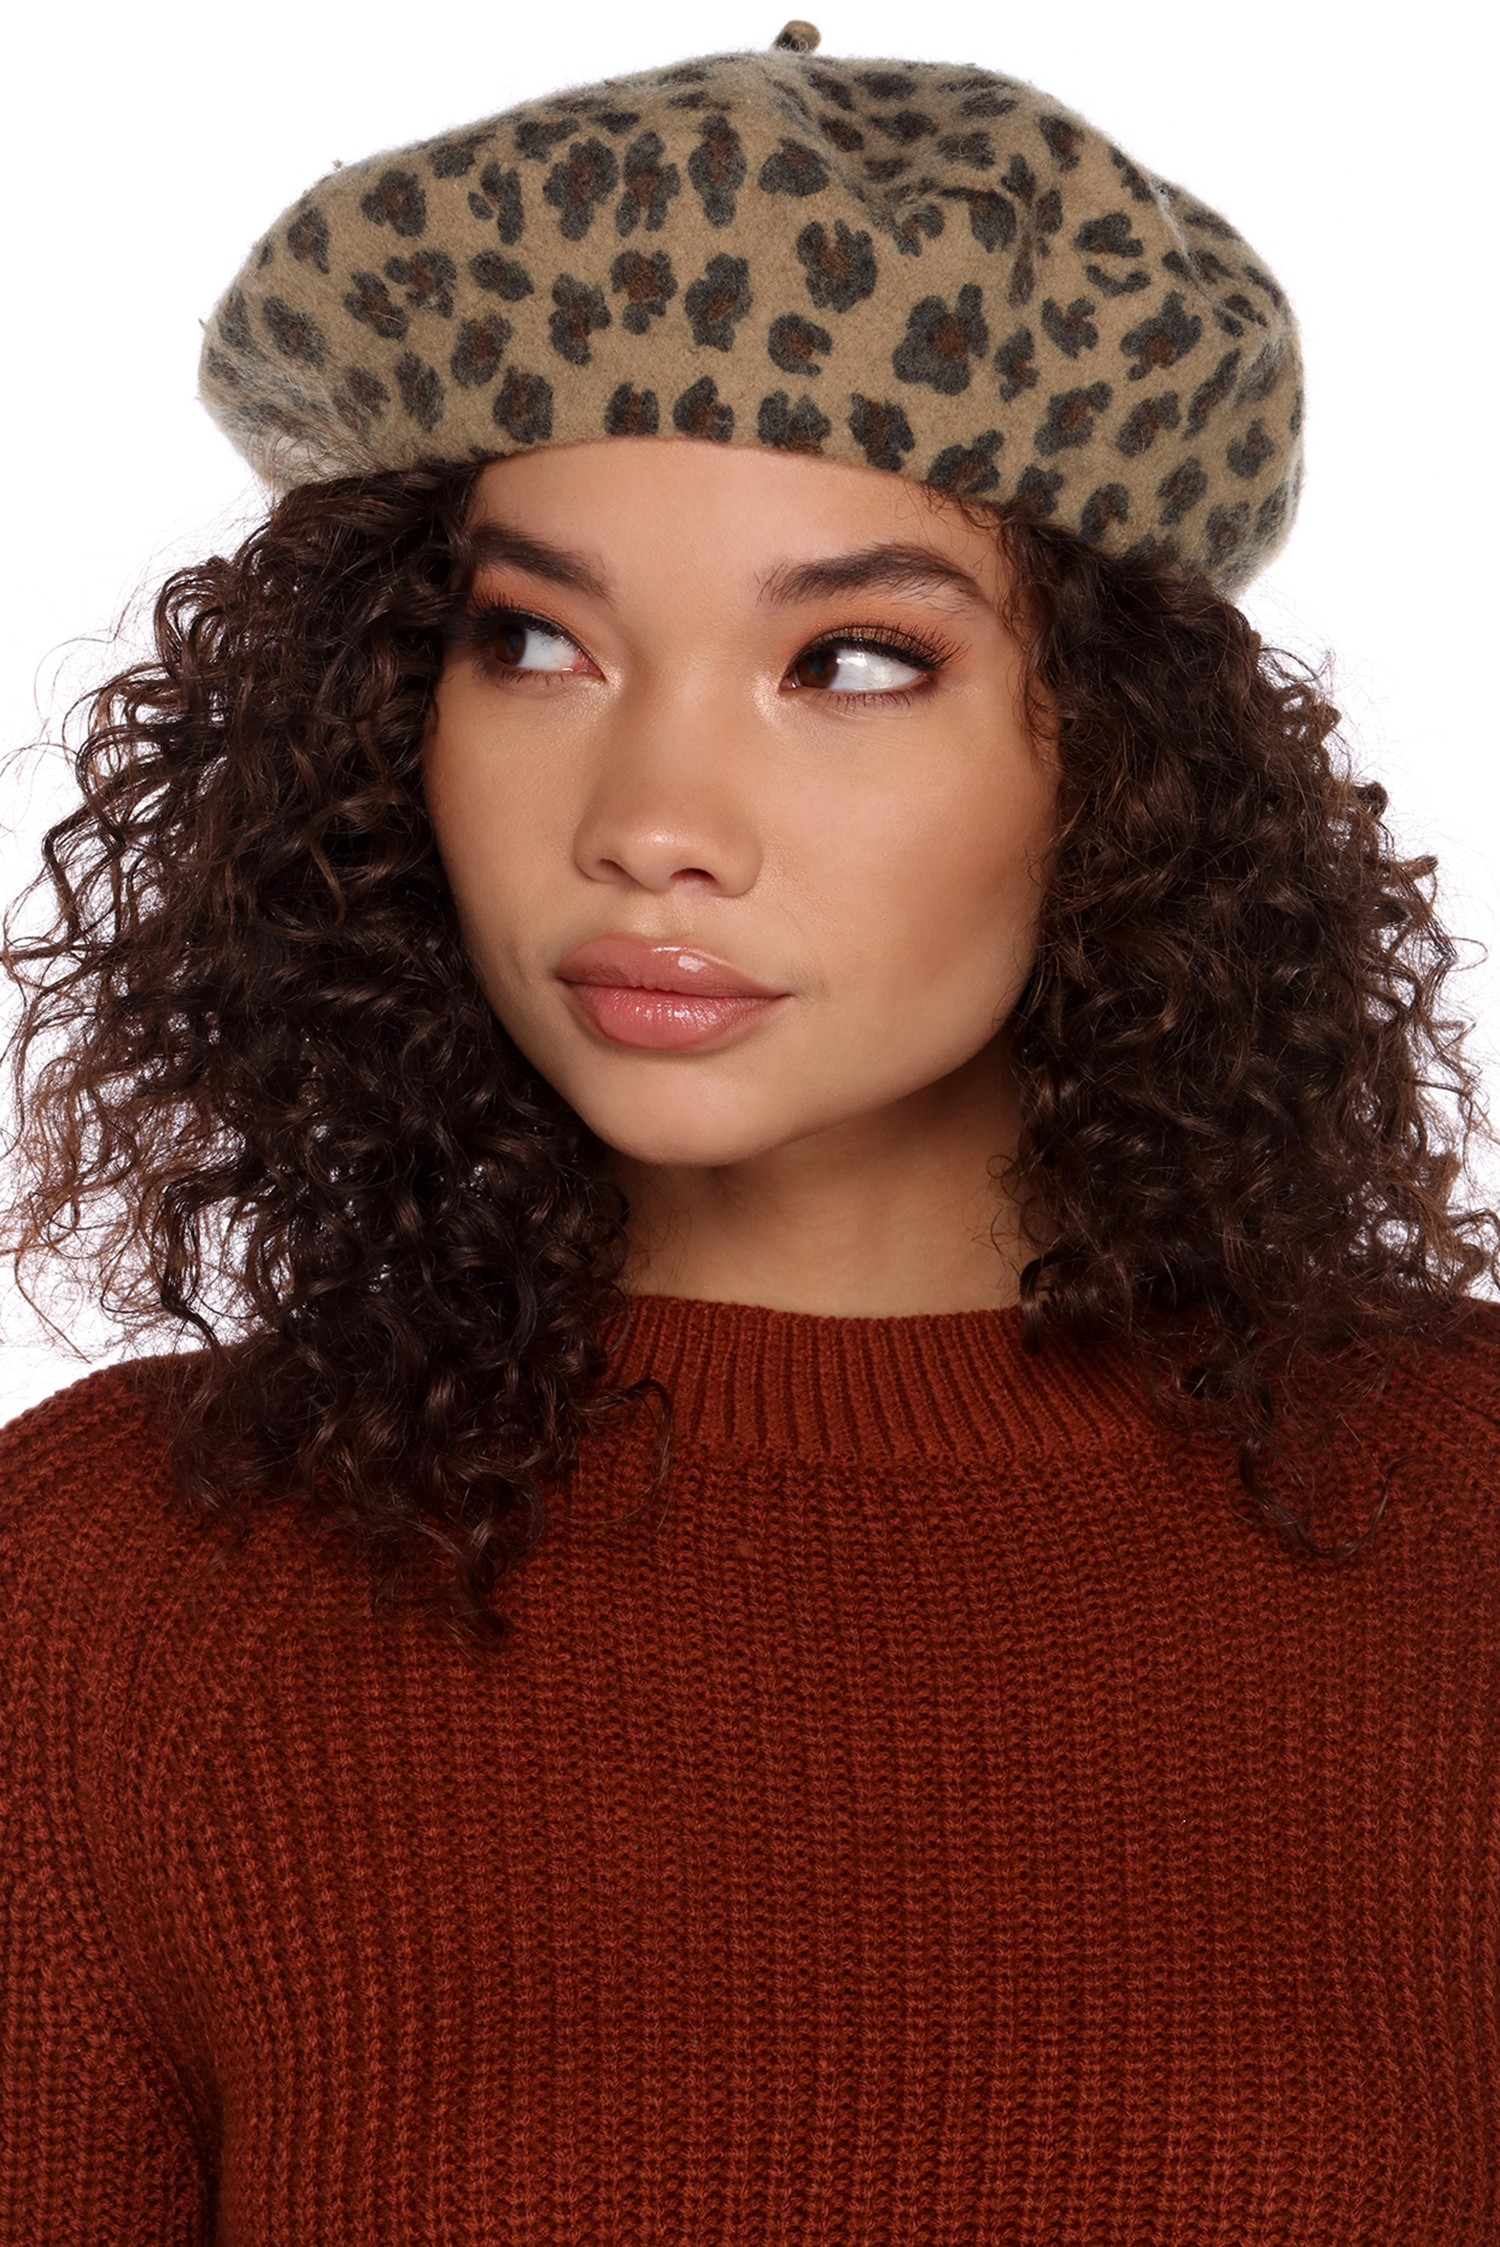 e40b0cc9bc6d4 14 berets to wear if you re too lazy to dye your roots - HelloGiggles